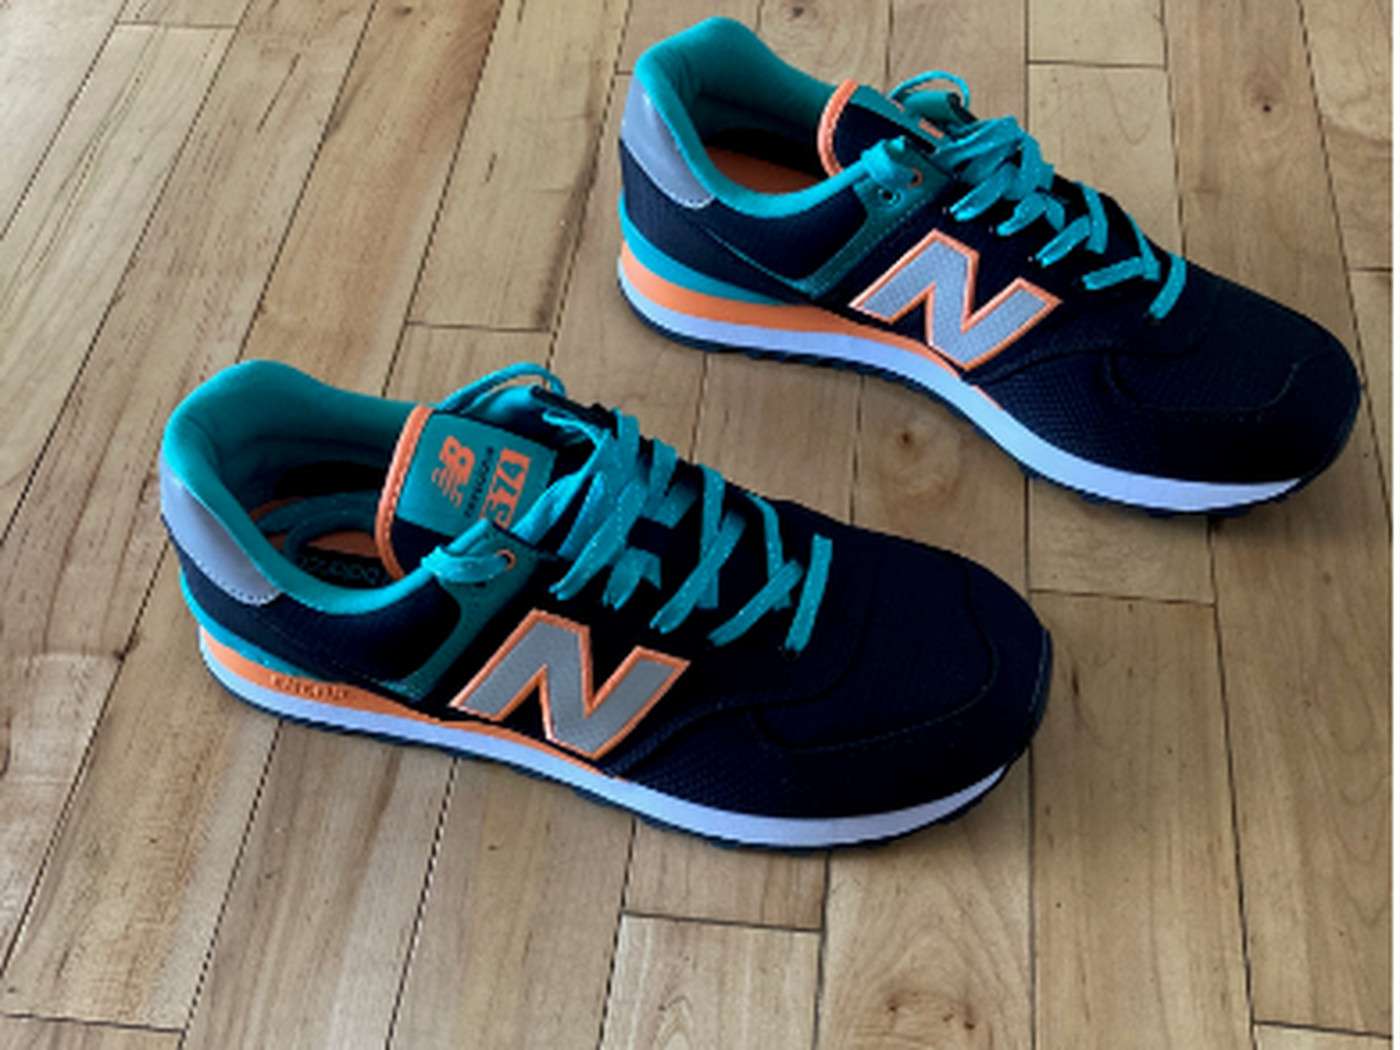 My New Balance Dolphins Shoes are the Tops in Miami Dolphins Shoes ...